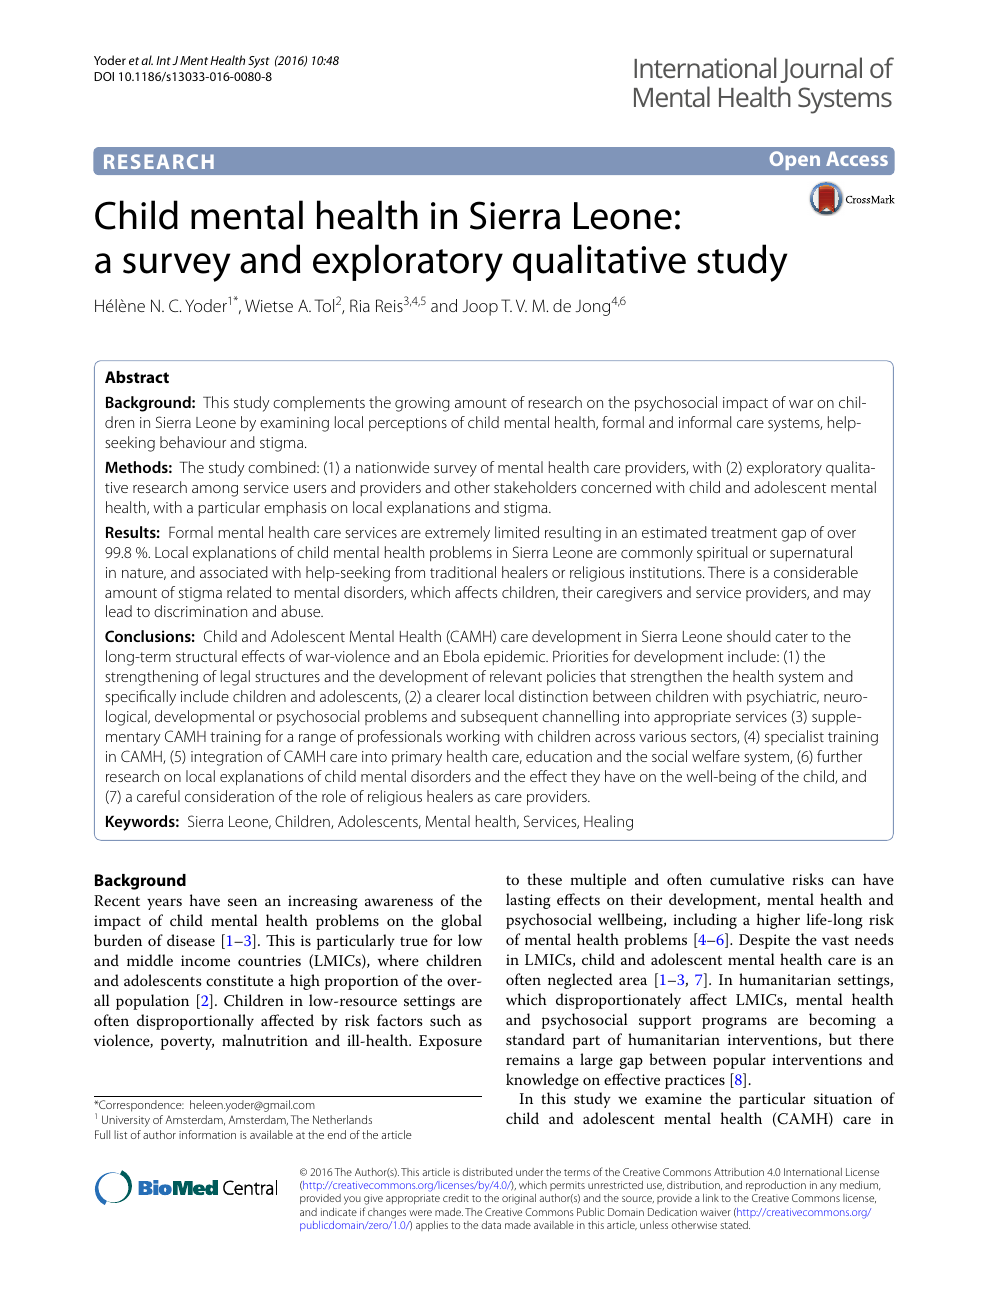 Child mental health in Sierra Leone: a survey and